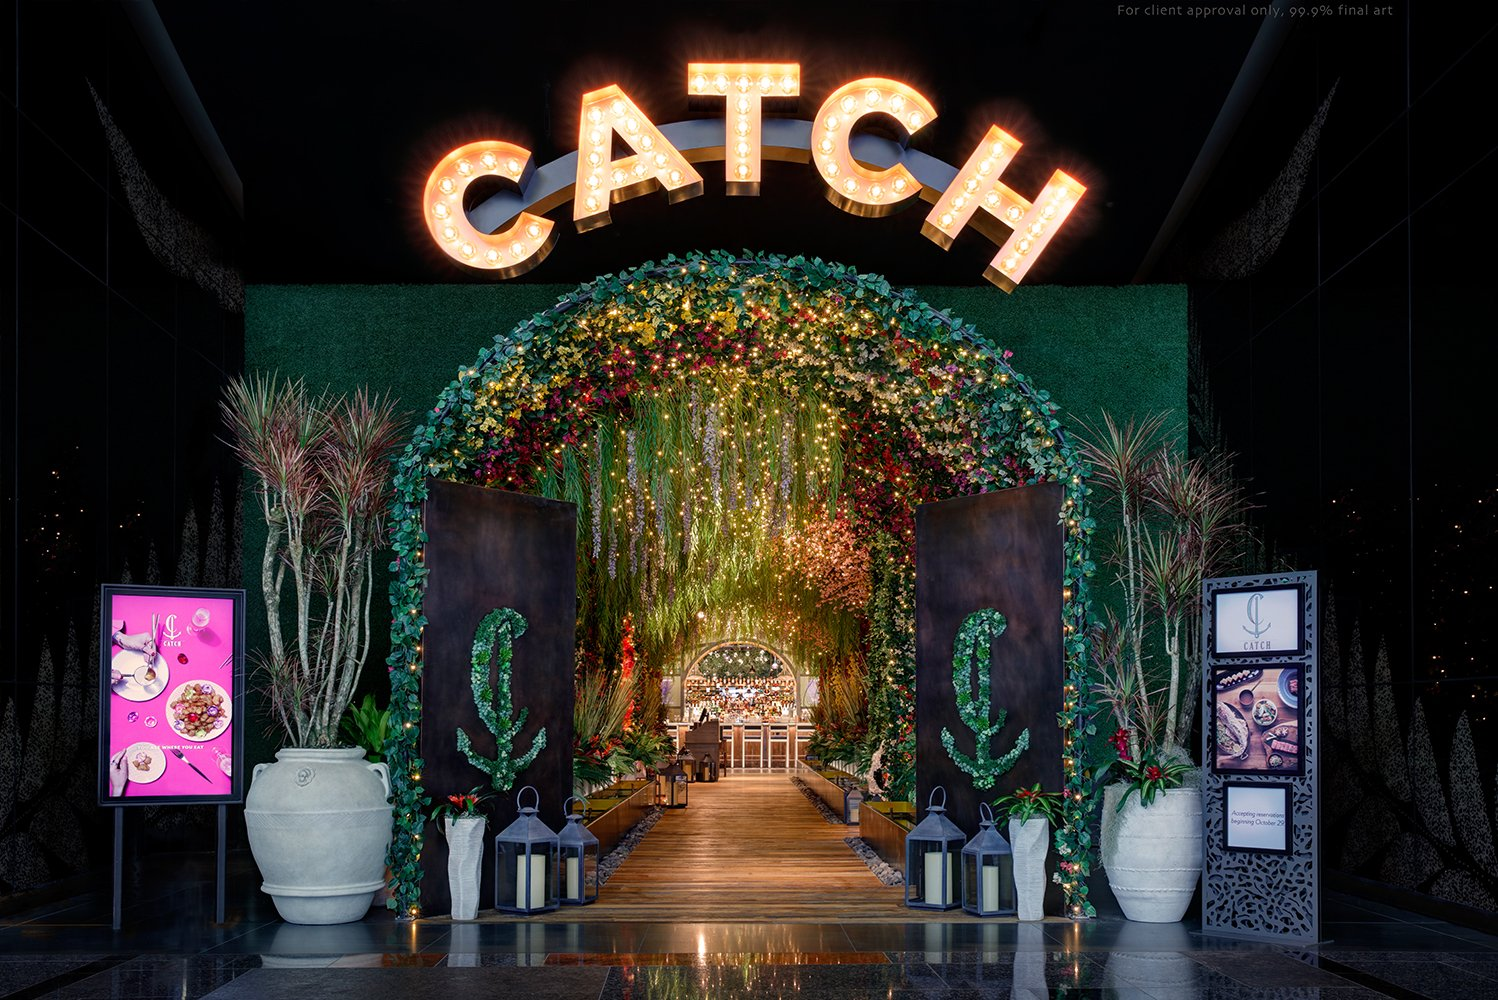 There is an 80-foot entry tunnel dripping with twinkling lights and flowers with secluded niches and floral artwork.